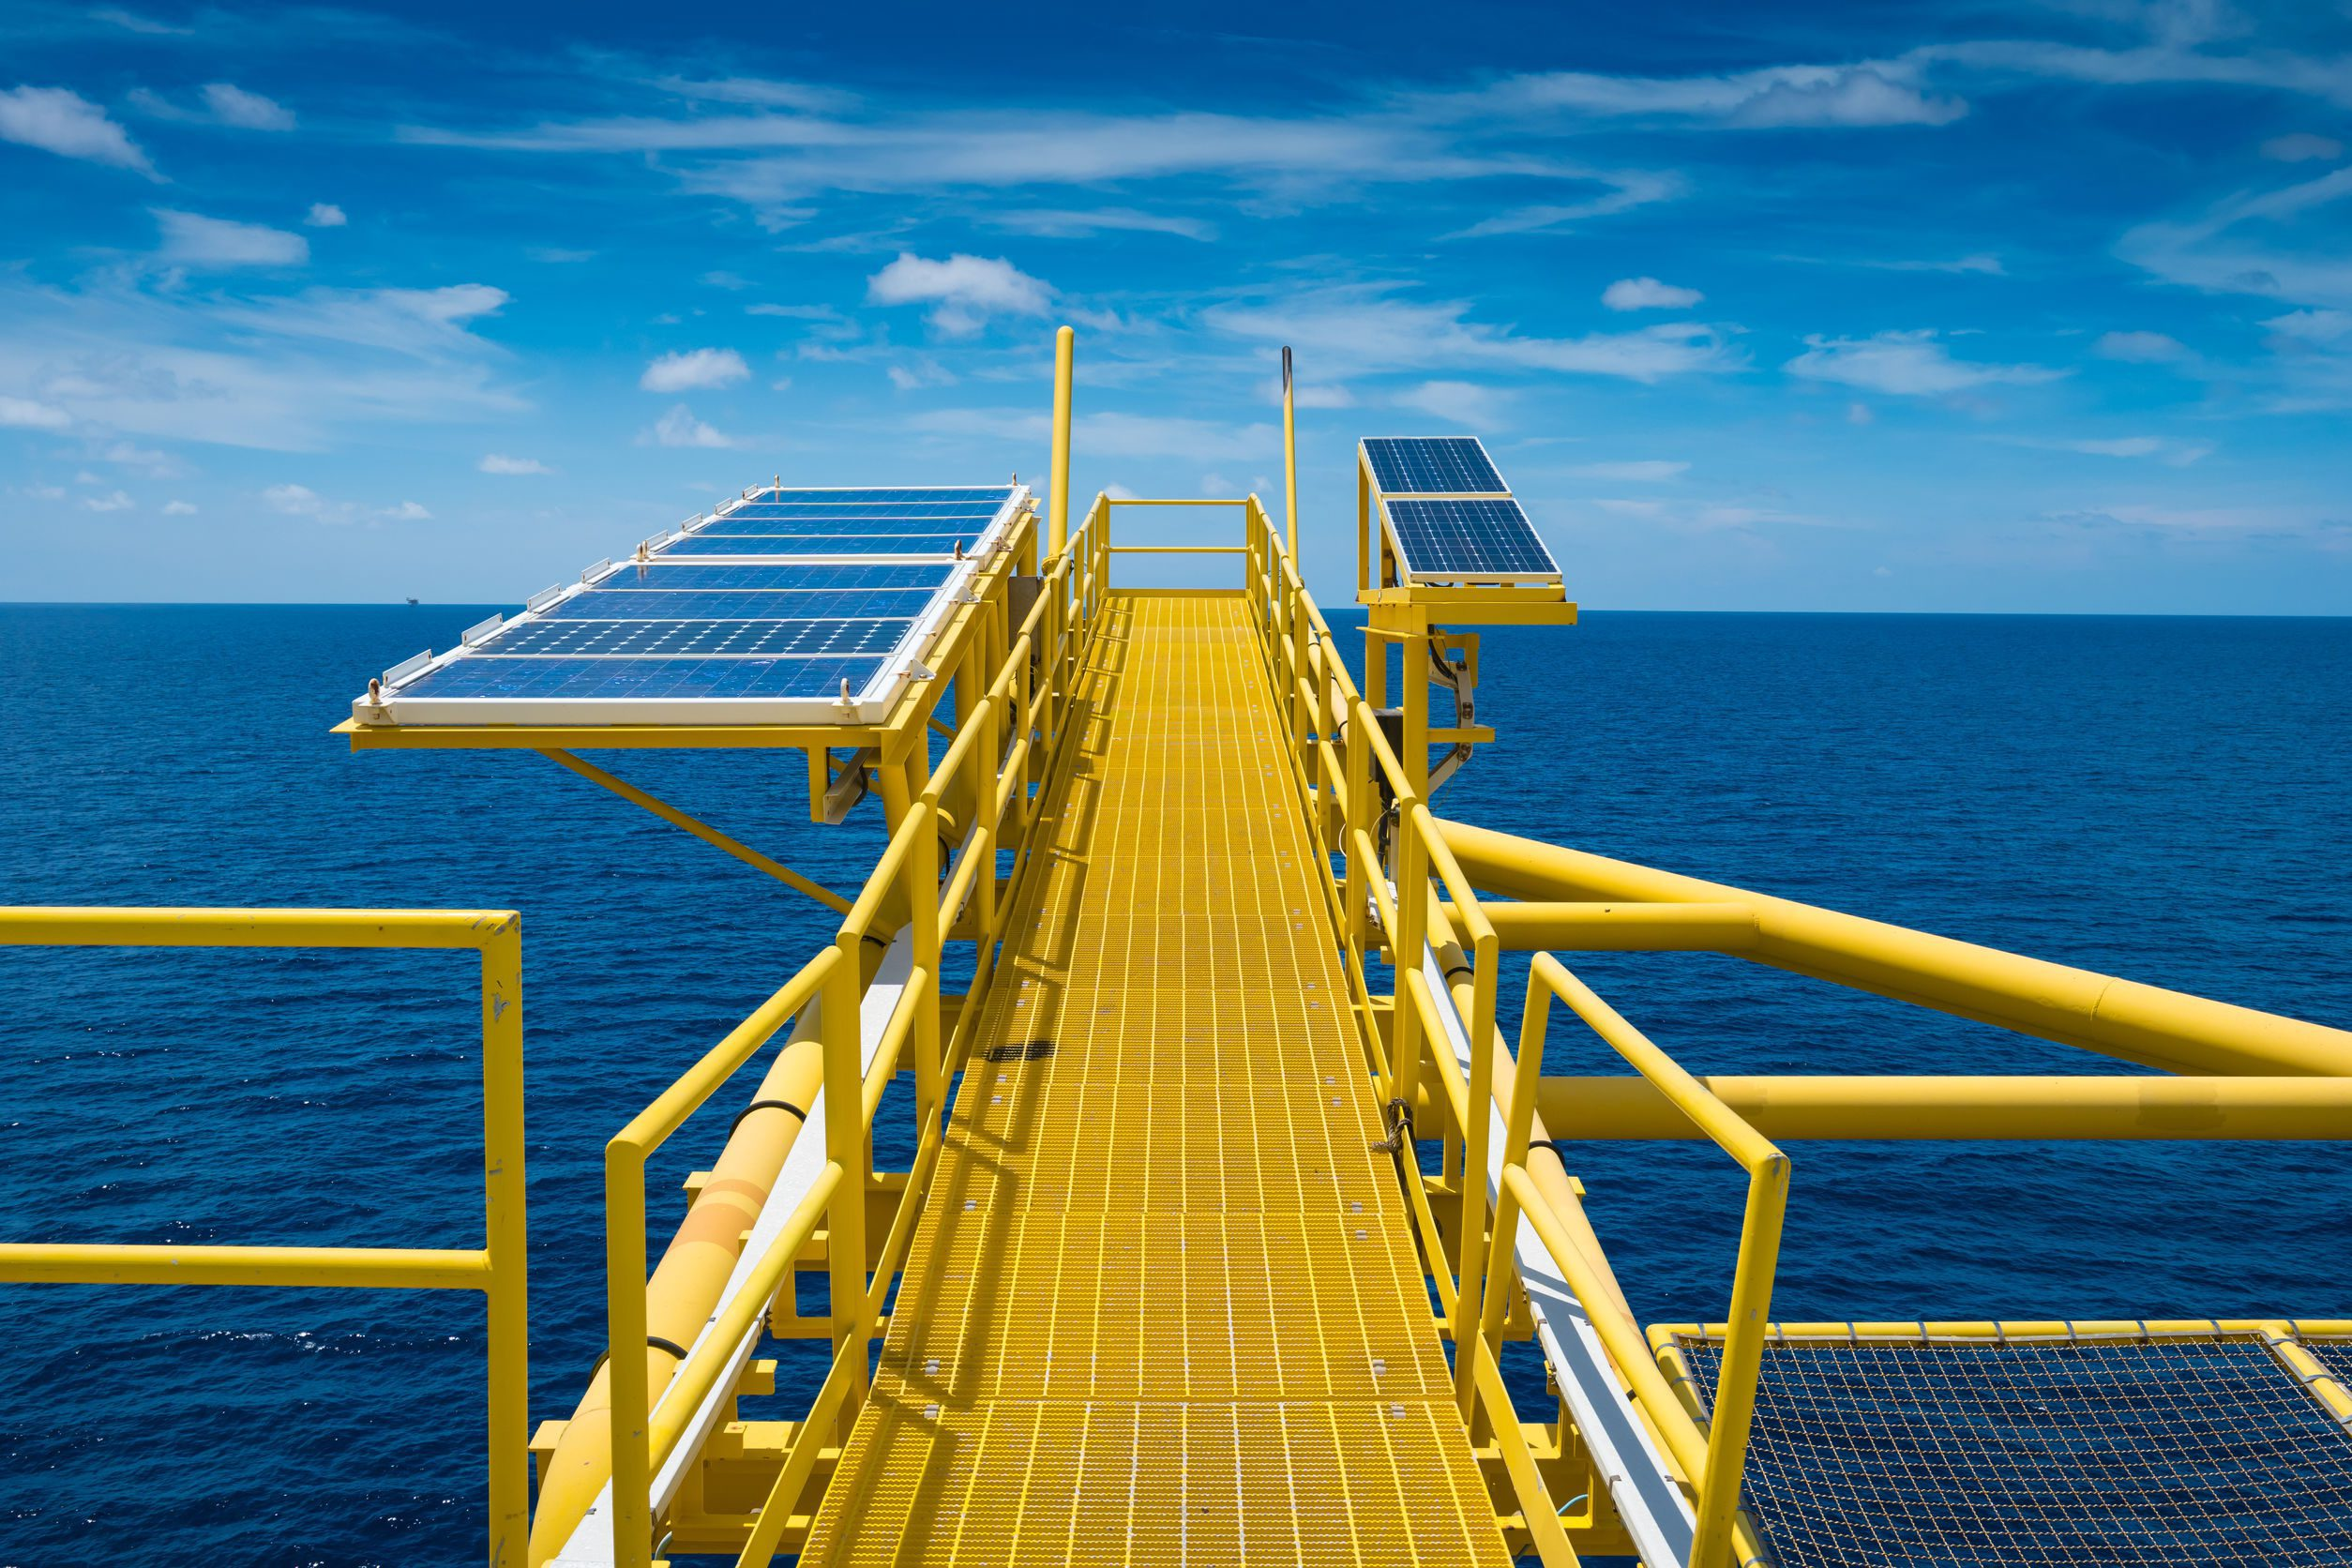 7 Of the Most Important Environmental Innovations for Oil & Gas